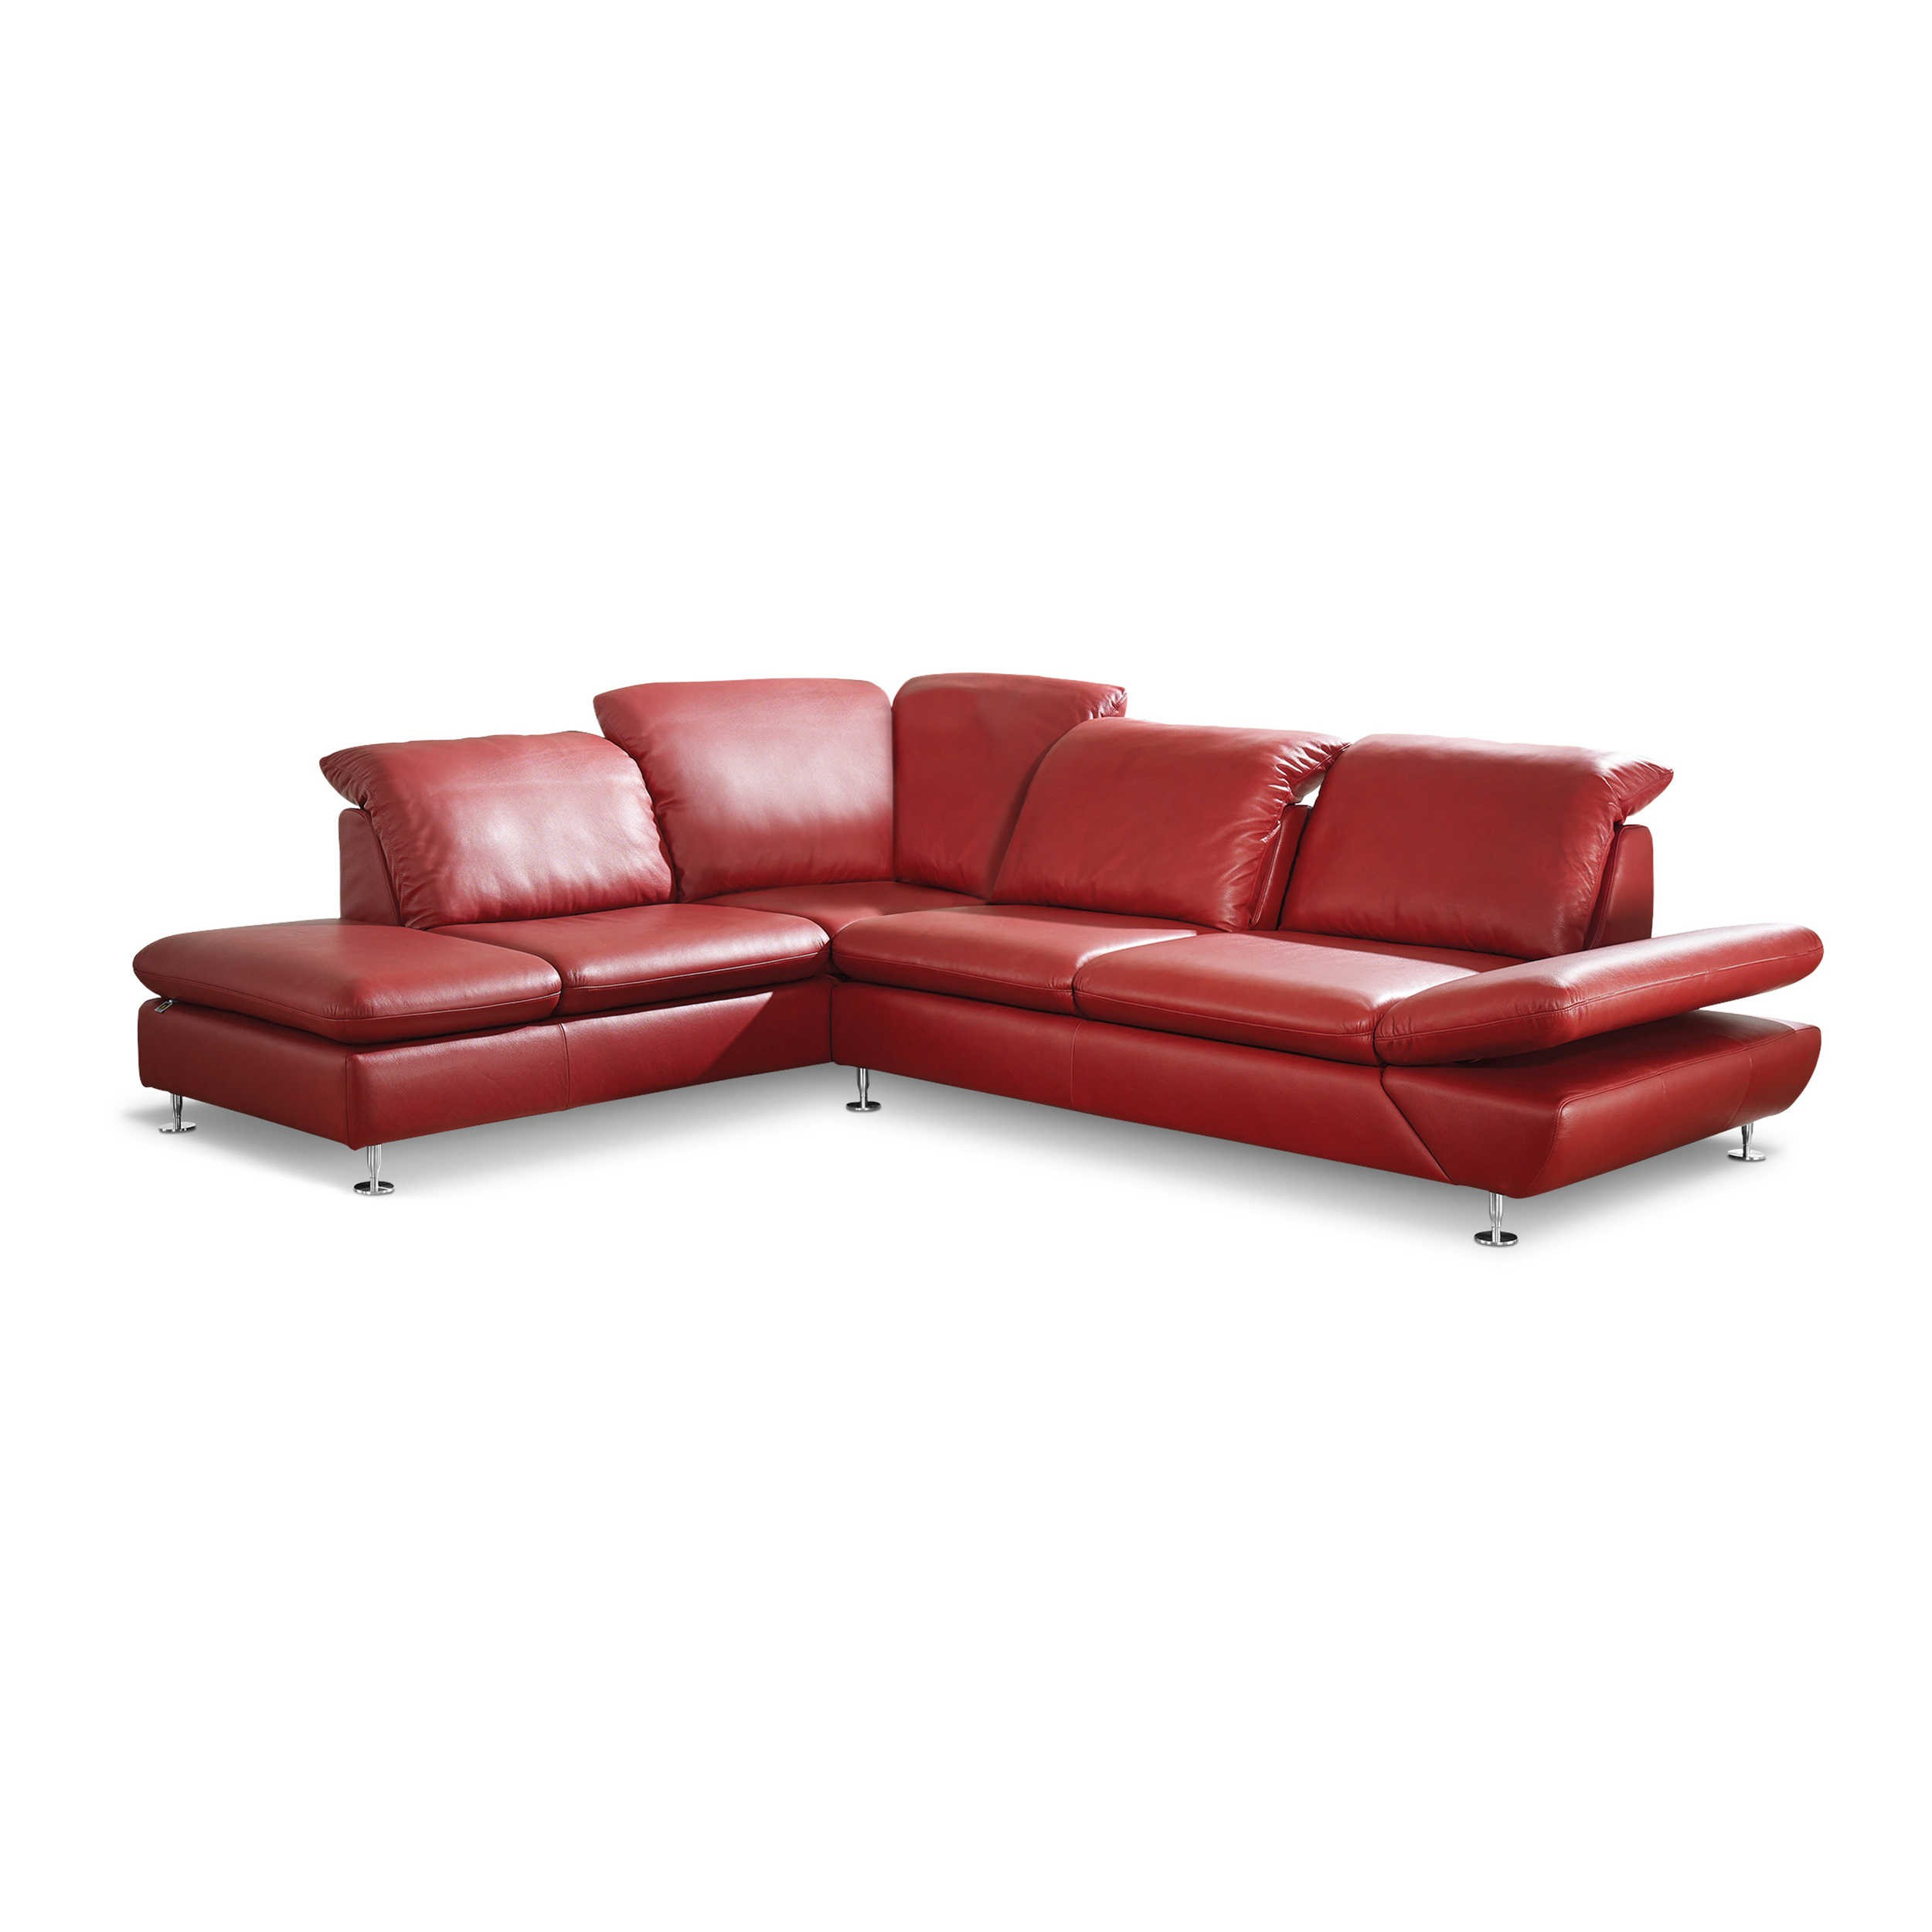 willi schillig ecksofa 15278 taoo rot leder online kaufen. Black Bedroom Furniture Sets. Home Design Ideas